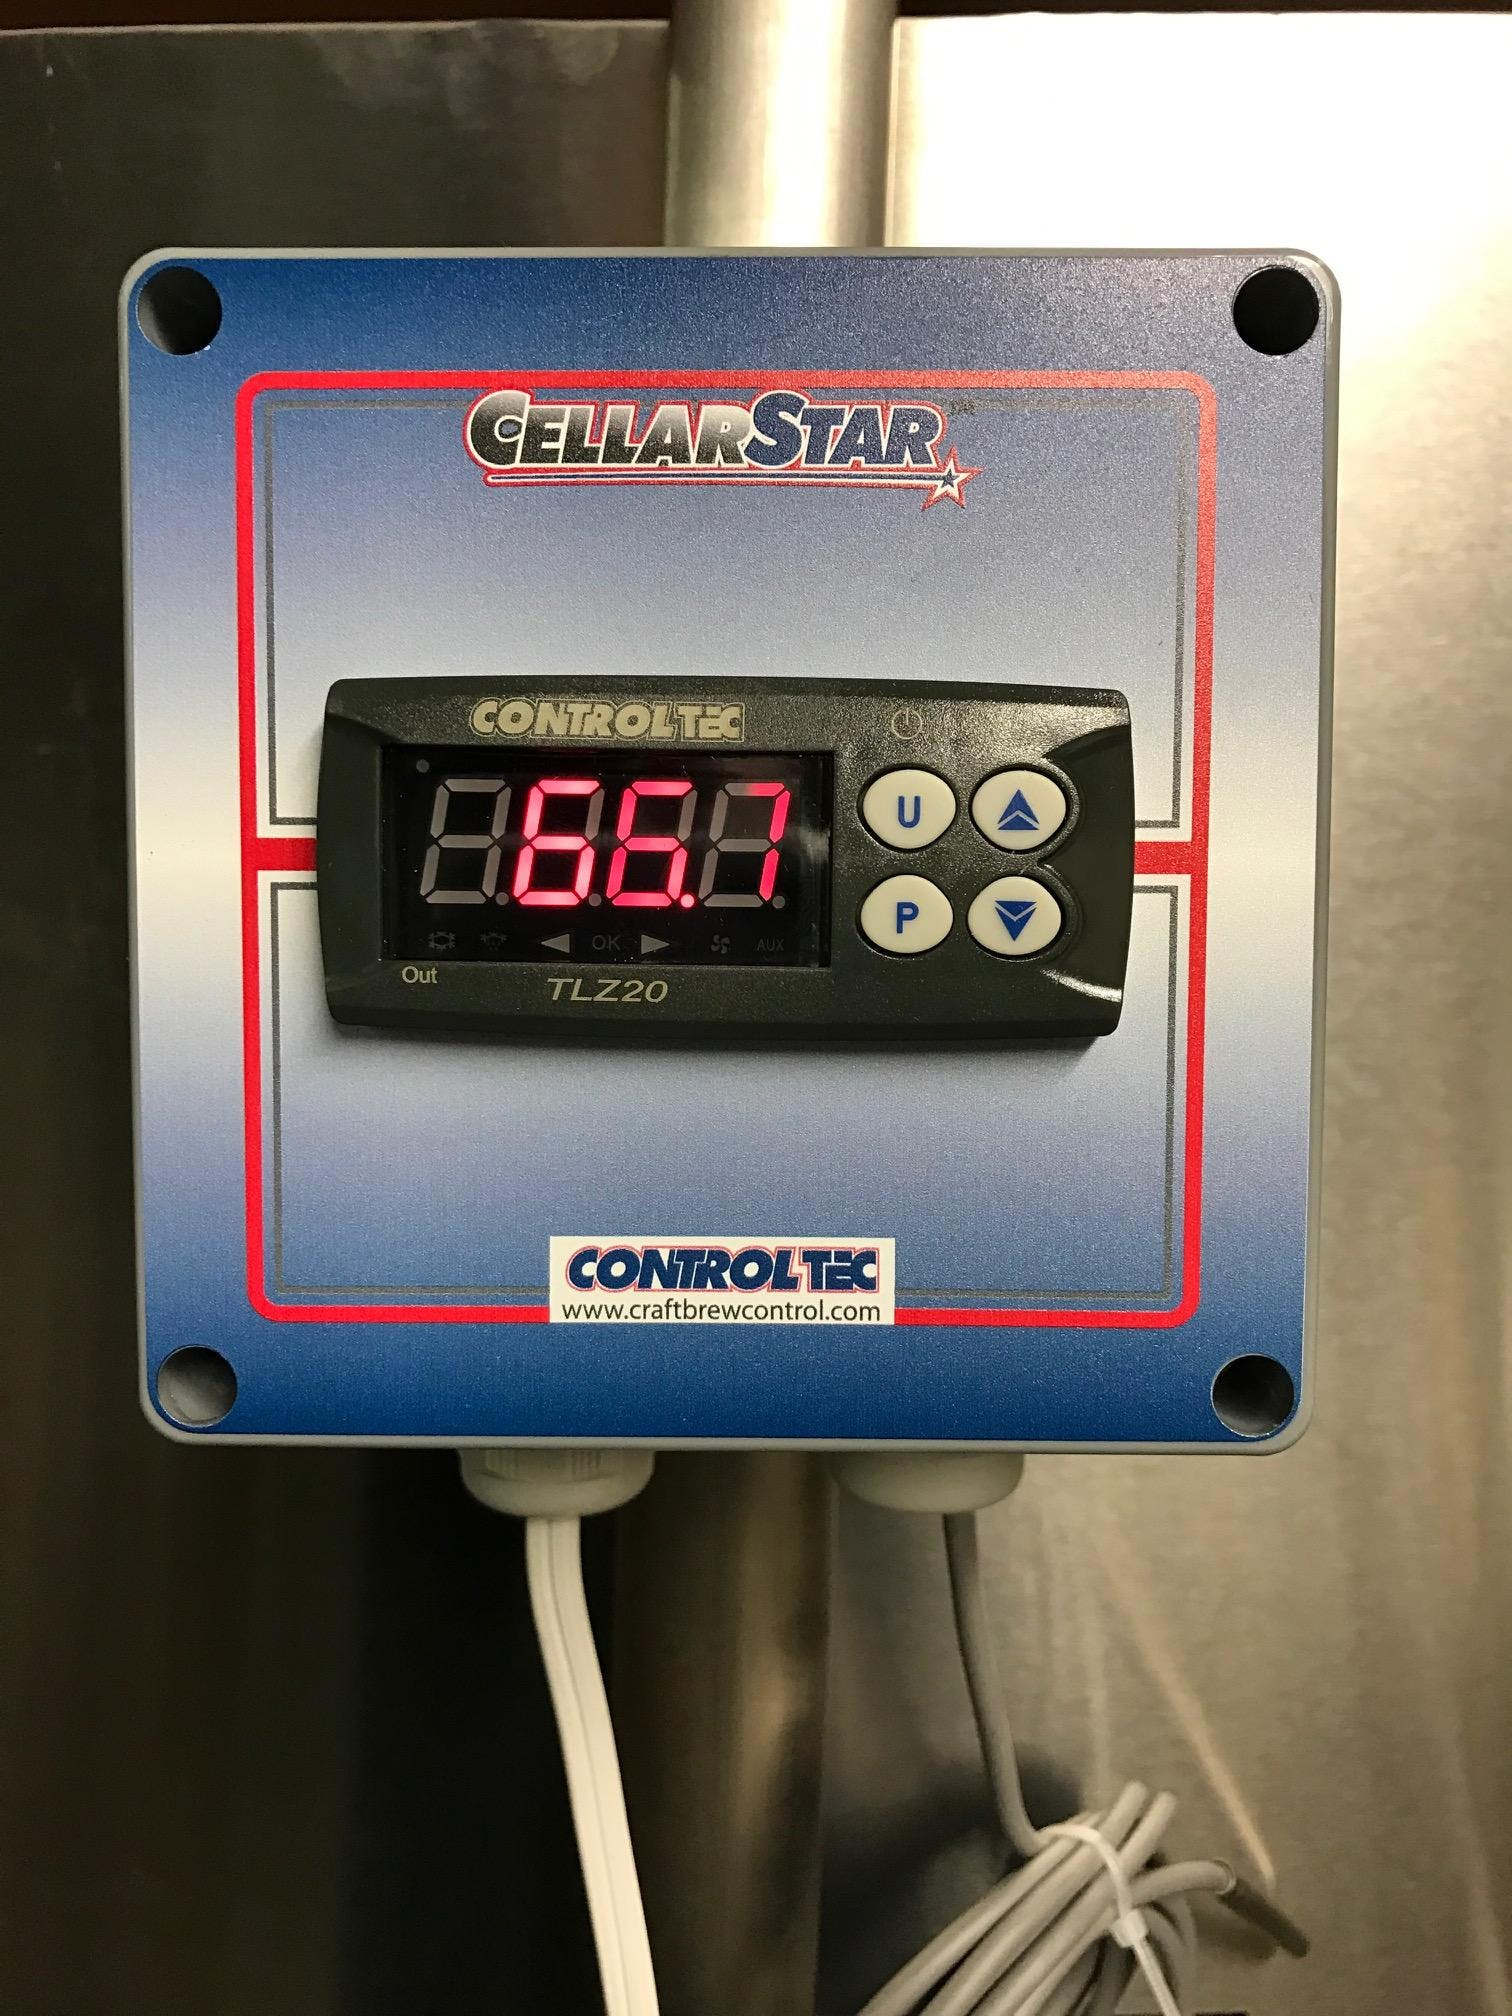 CellarStar - economy tank mounted control Control System sold by ControlTec, Inc